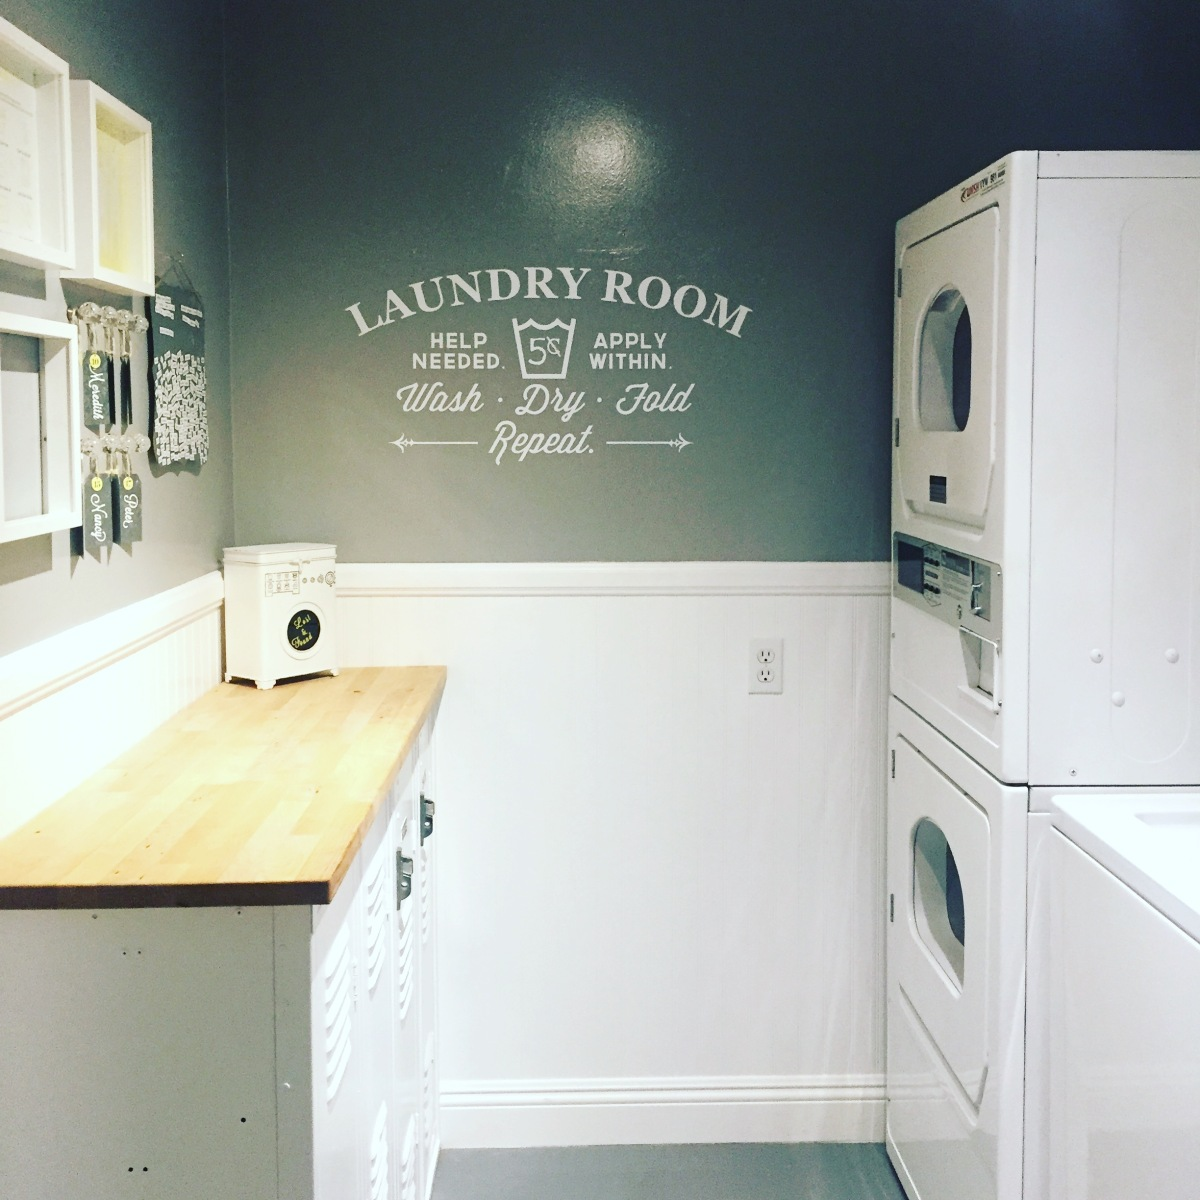 these walls do talk: laundry room remodel